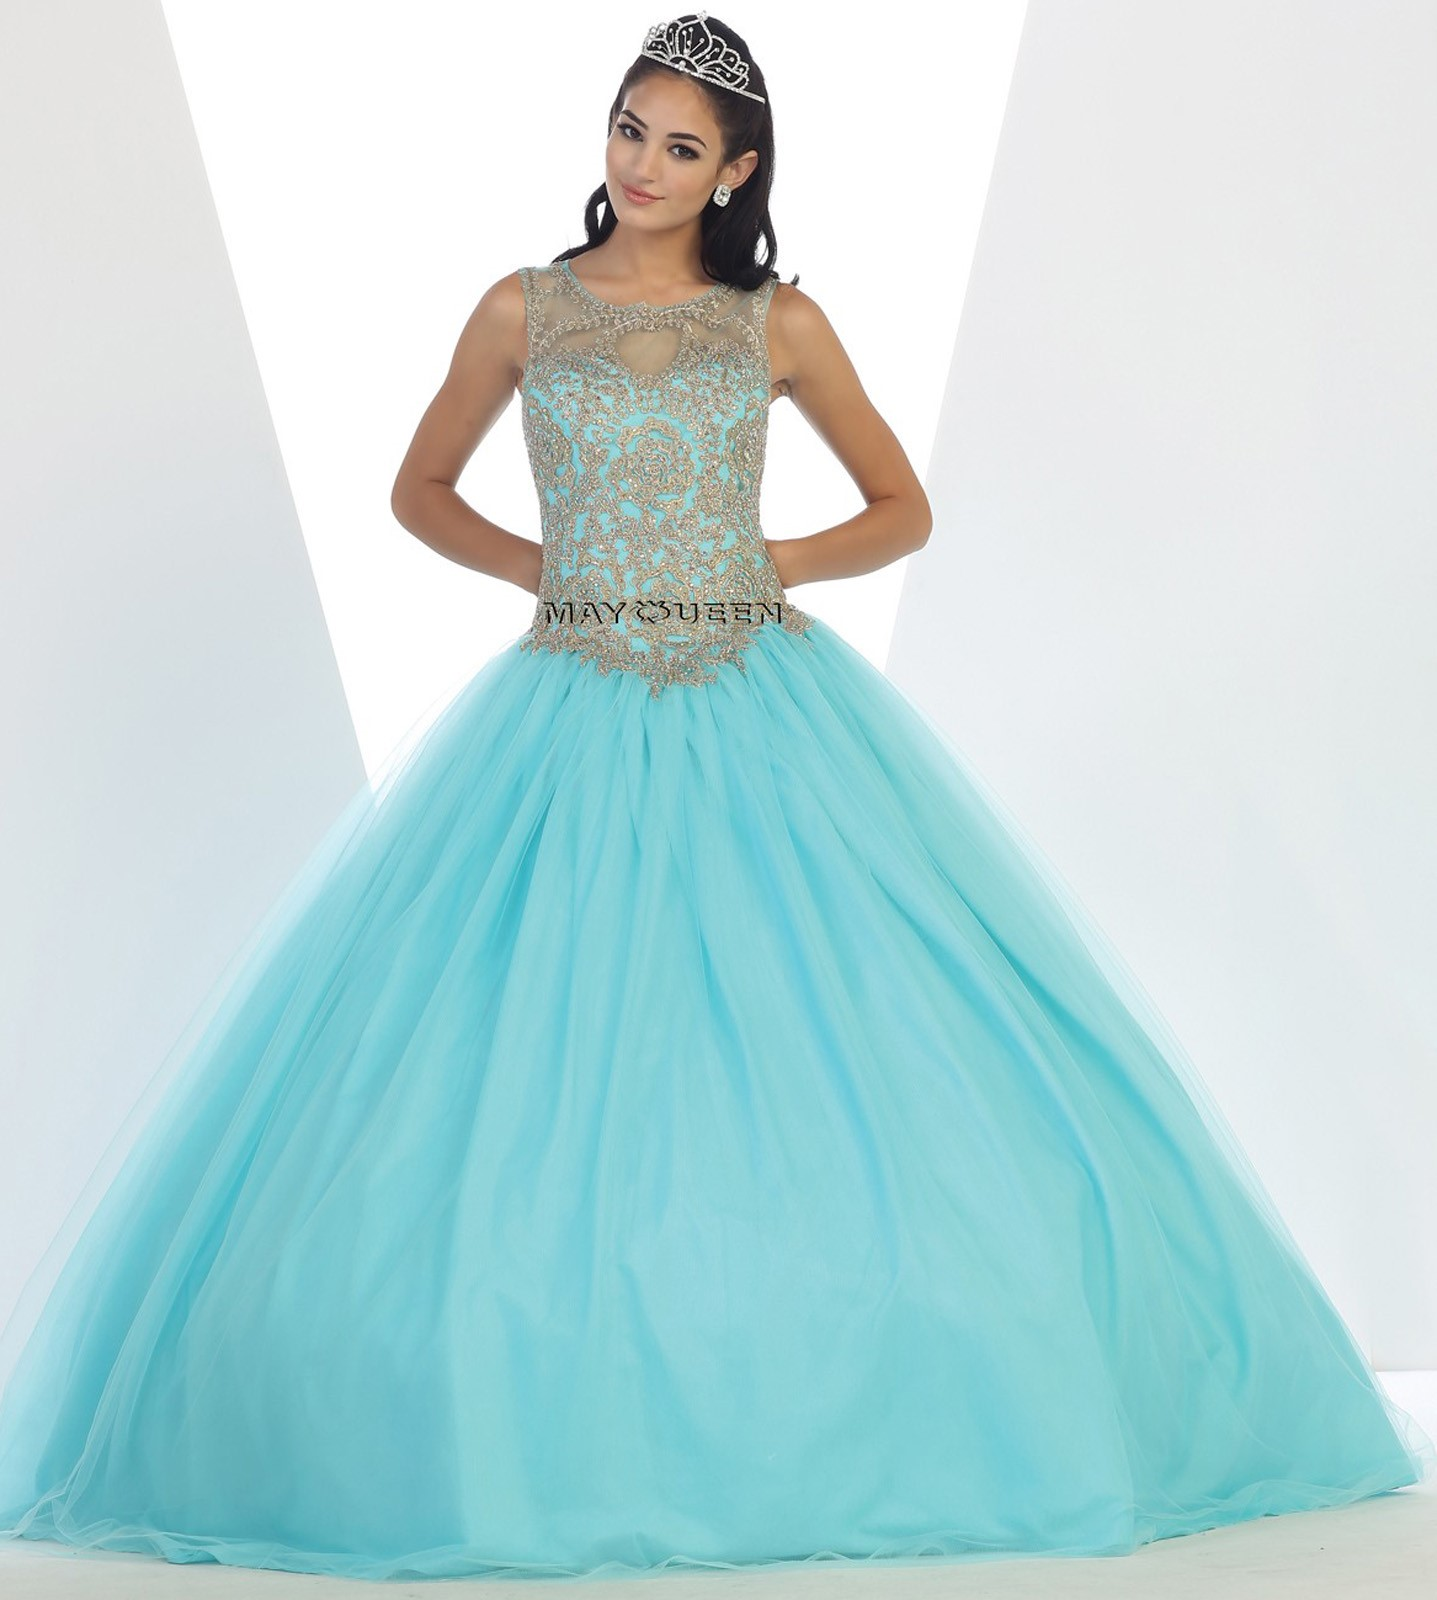 Quinceanera Sweet 16 Ball Gown Dress Party Prom Evening Cocktail ...